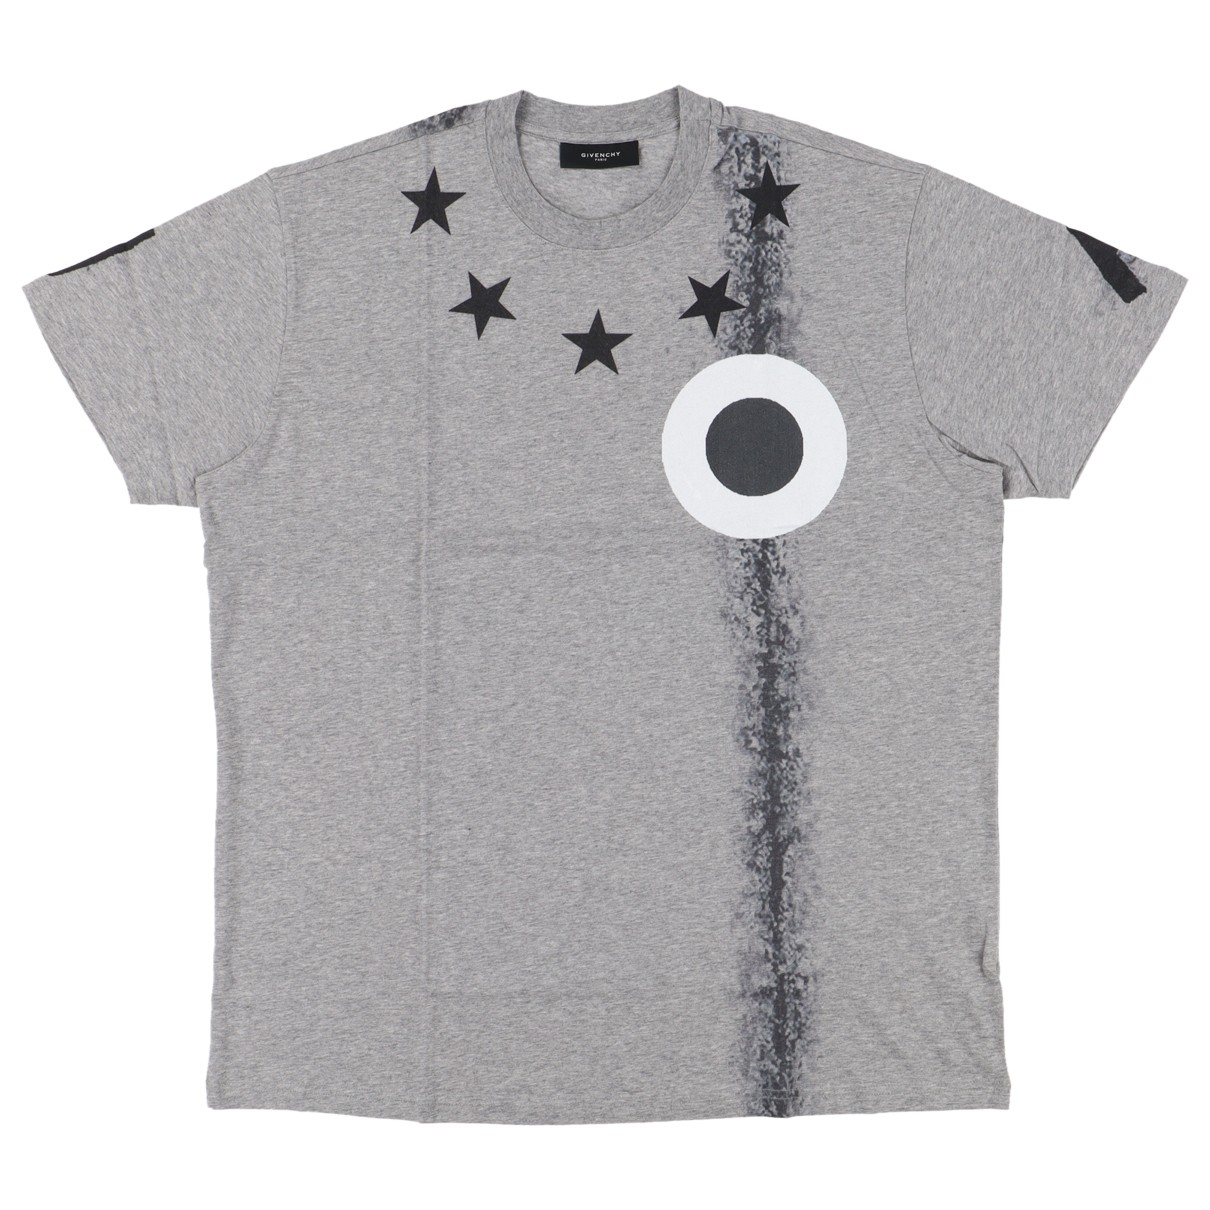 Givenchy \N Grey Cotton T-shirts for Men M International